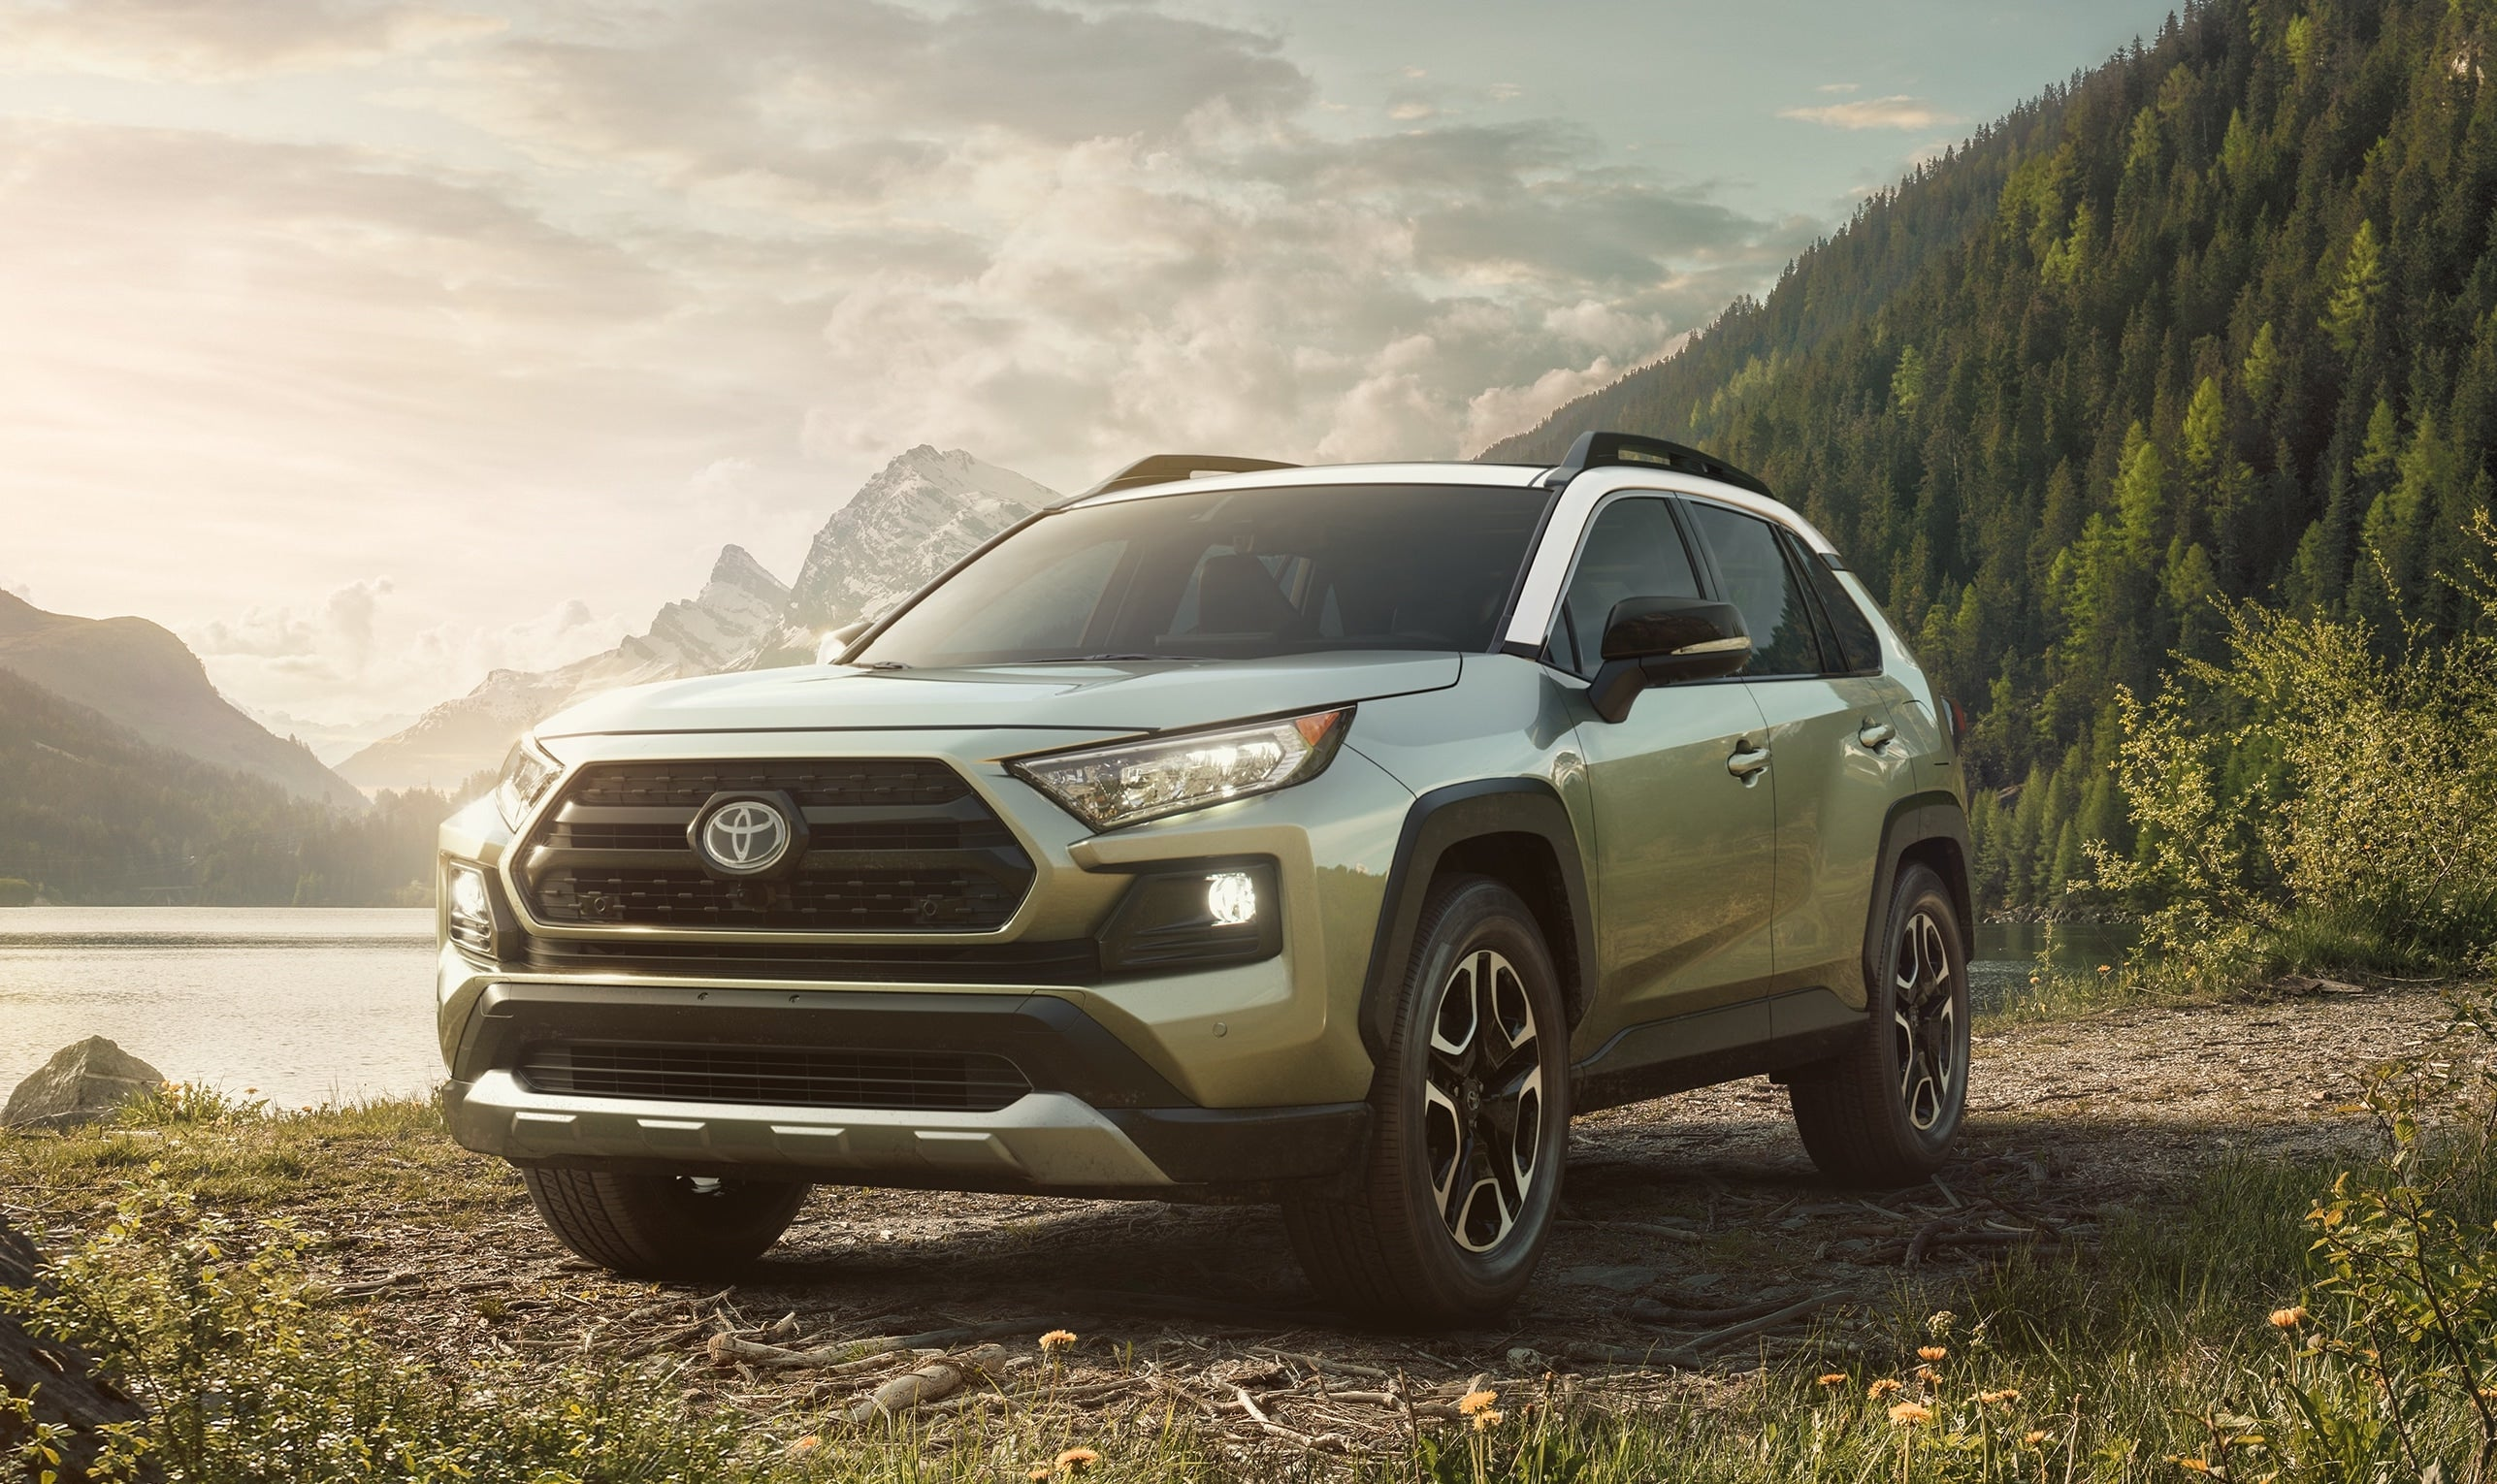 A silver 2019 Toyota RAV4, a compact crossover SUV.